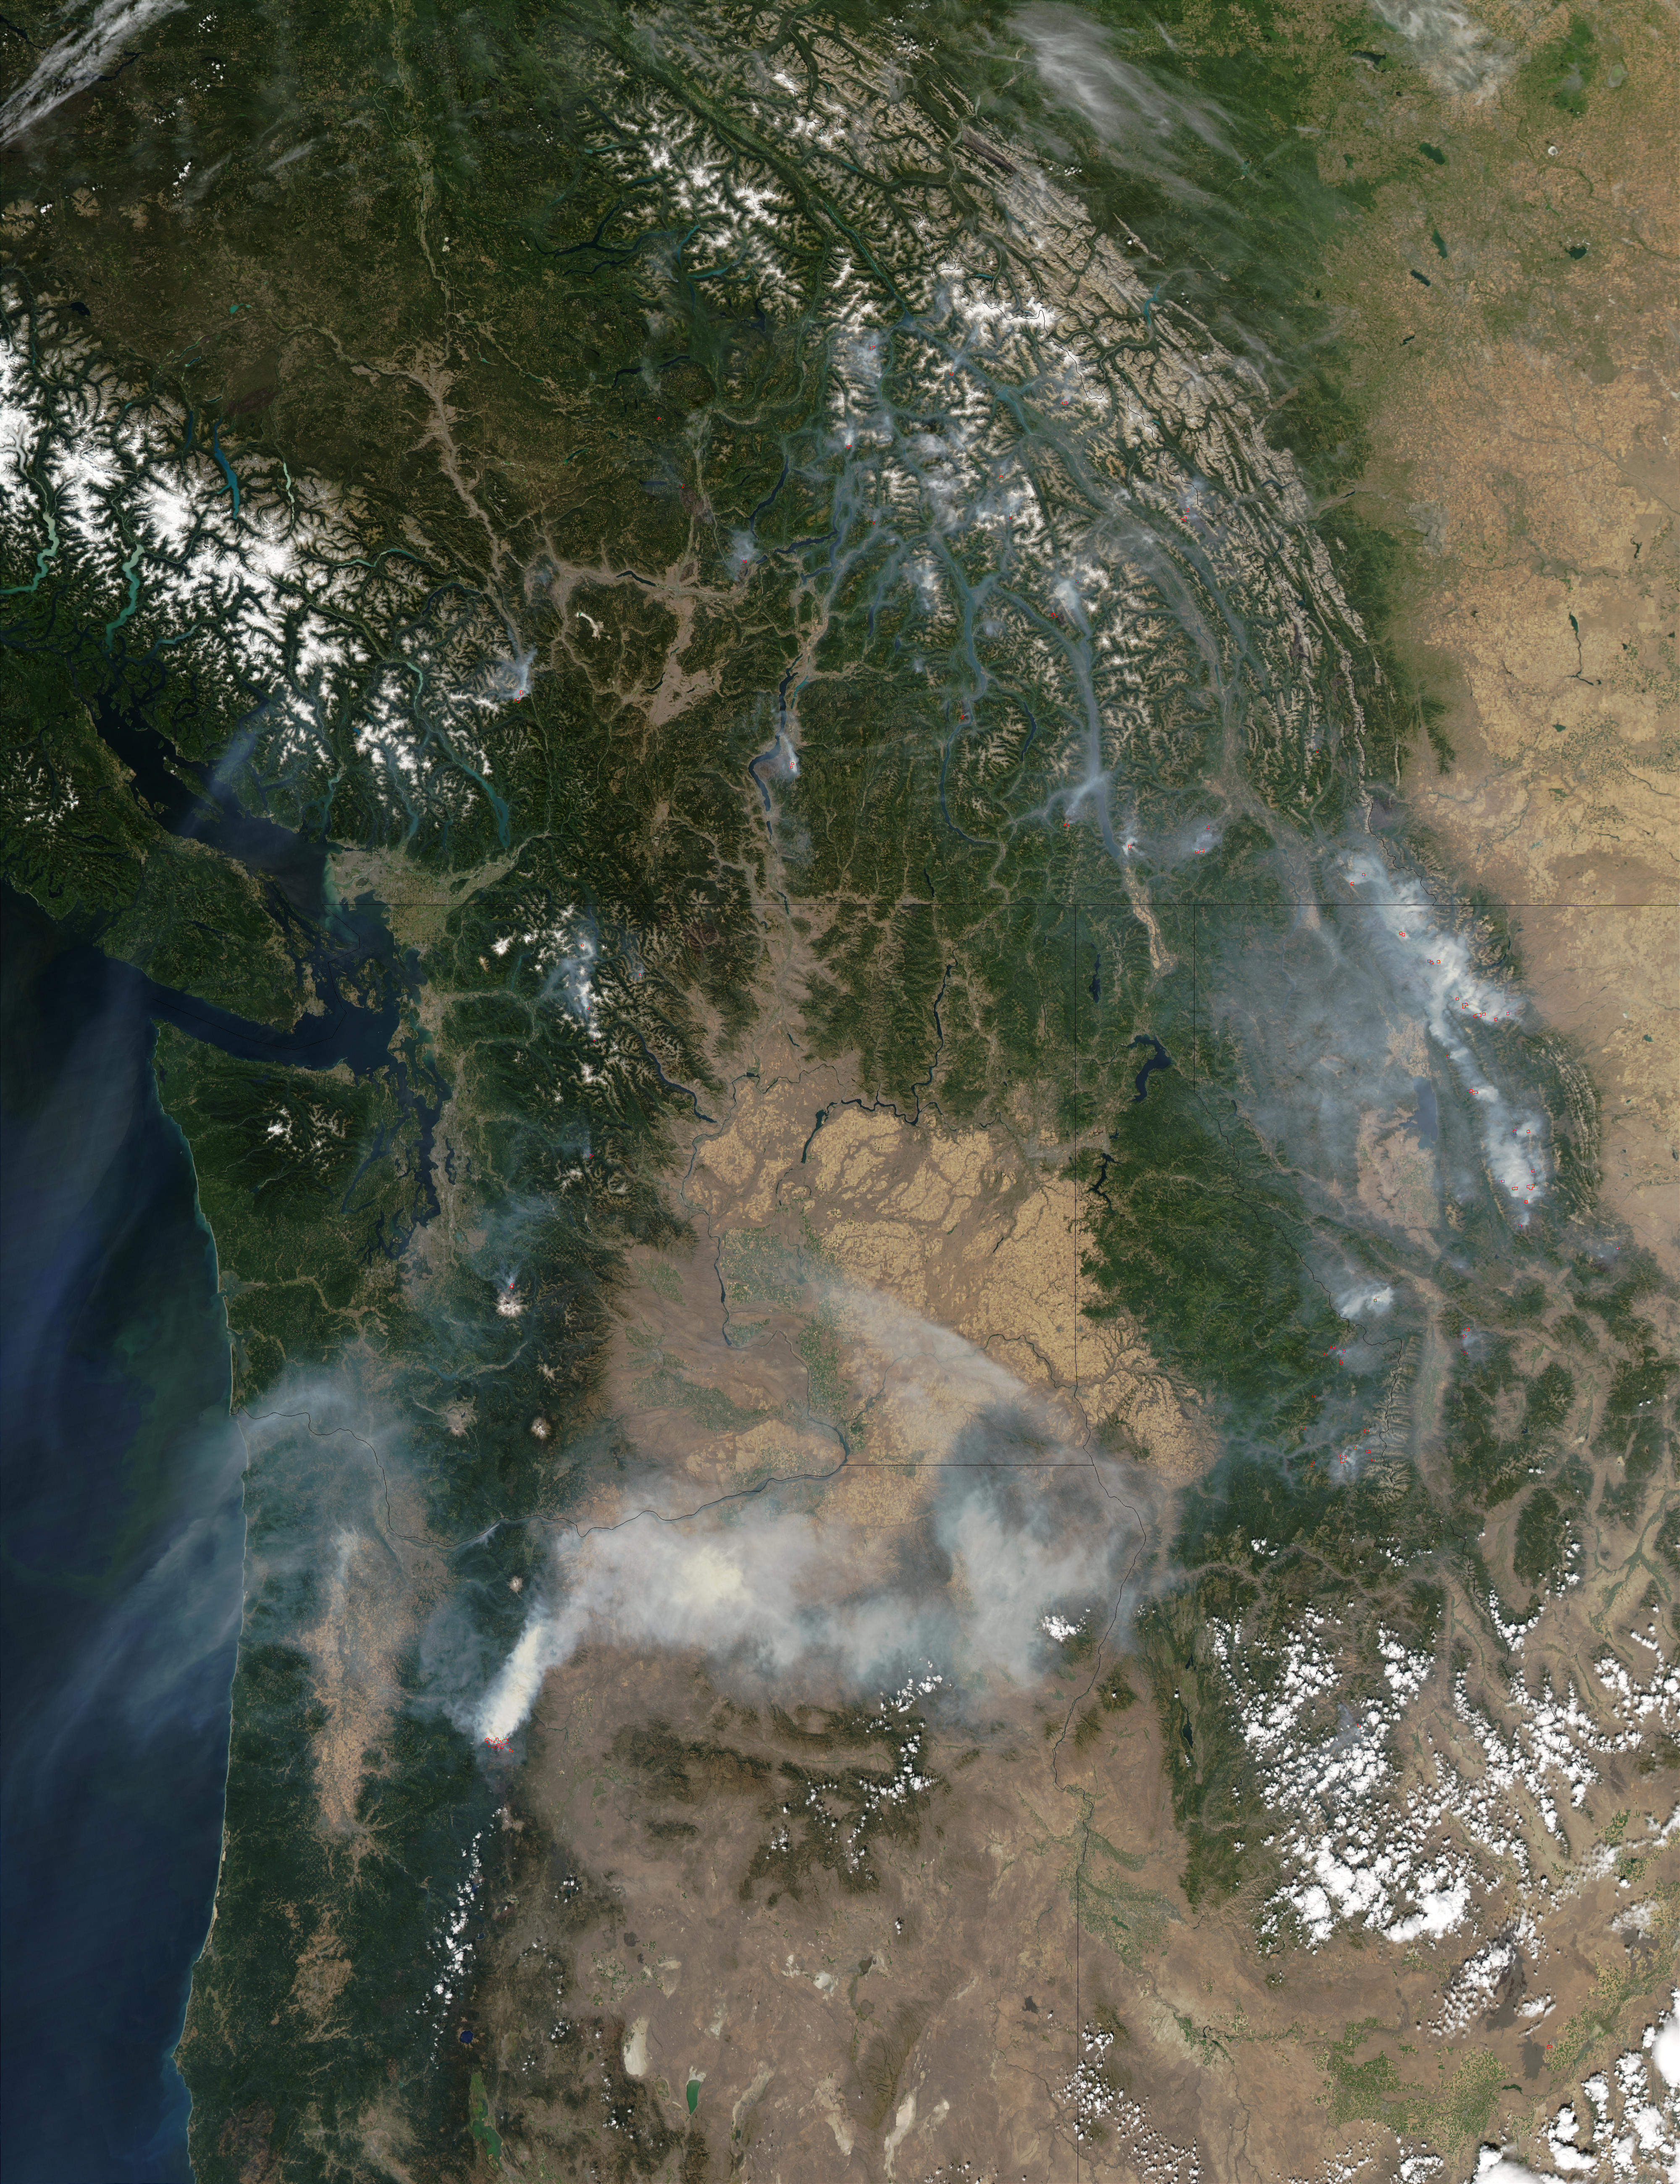 Image of Aqua/MODIS 2003/245 20:55 UTC Fires and smoke in the Pacific Northwest, Pixel size 250m